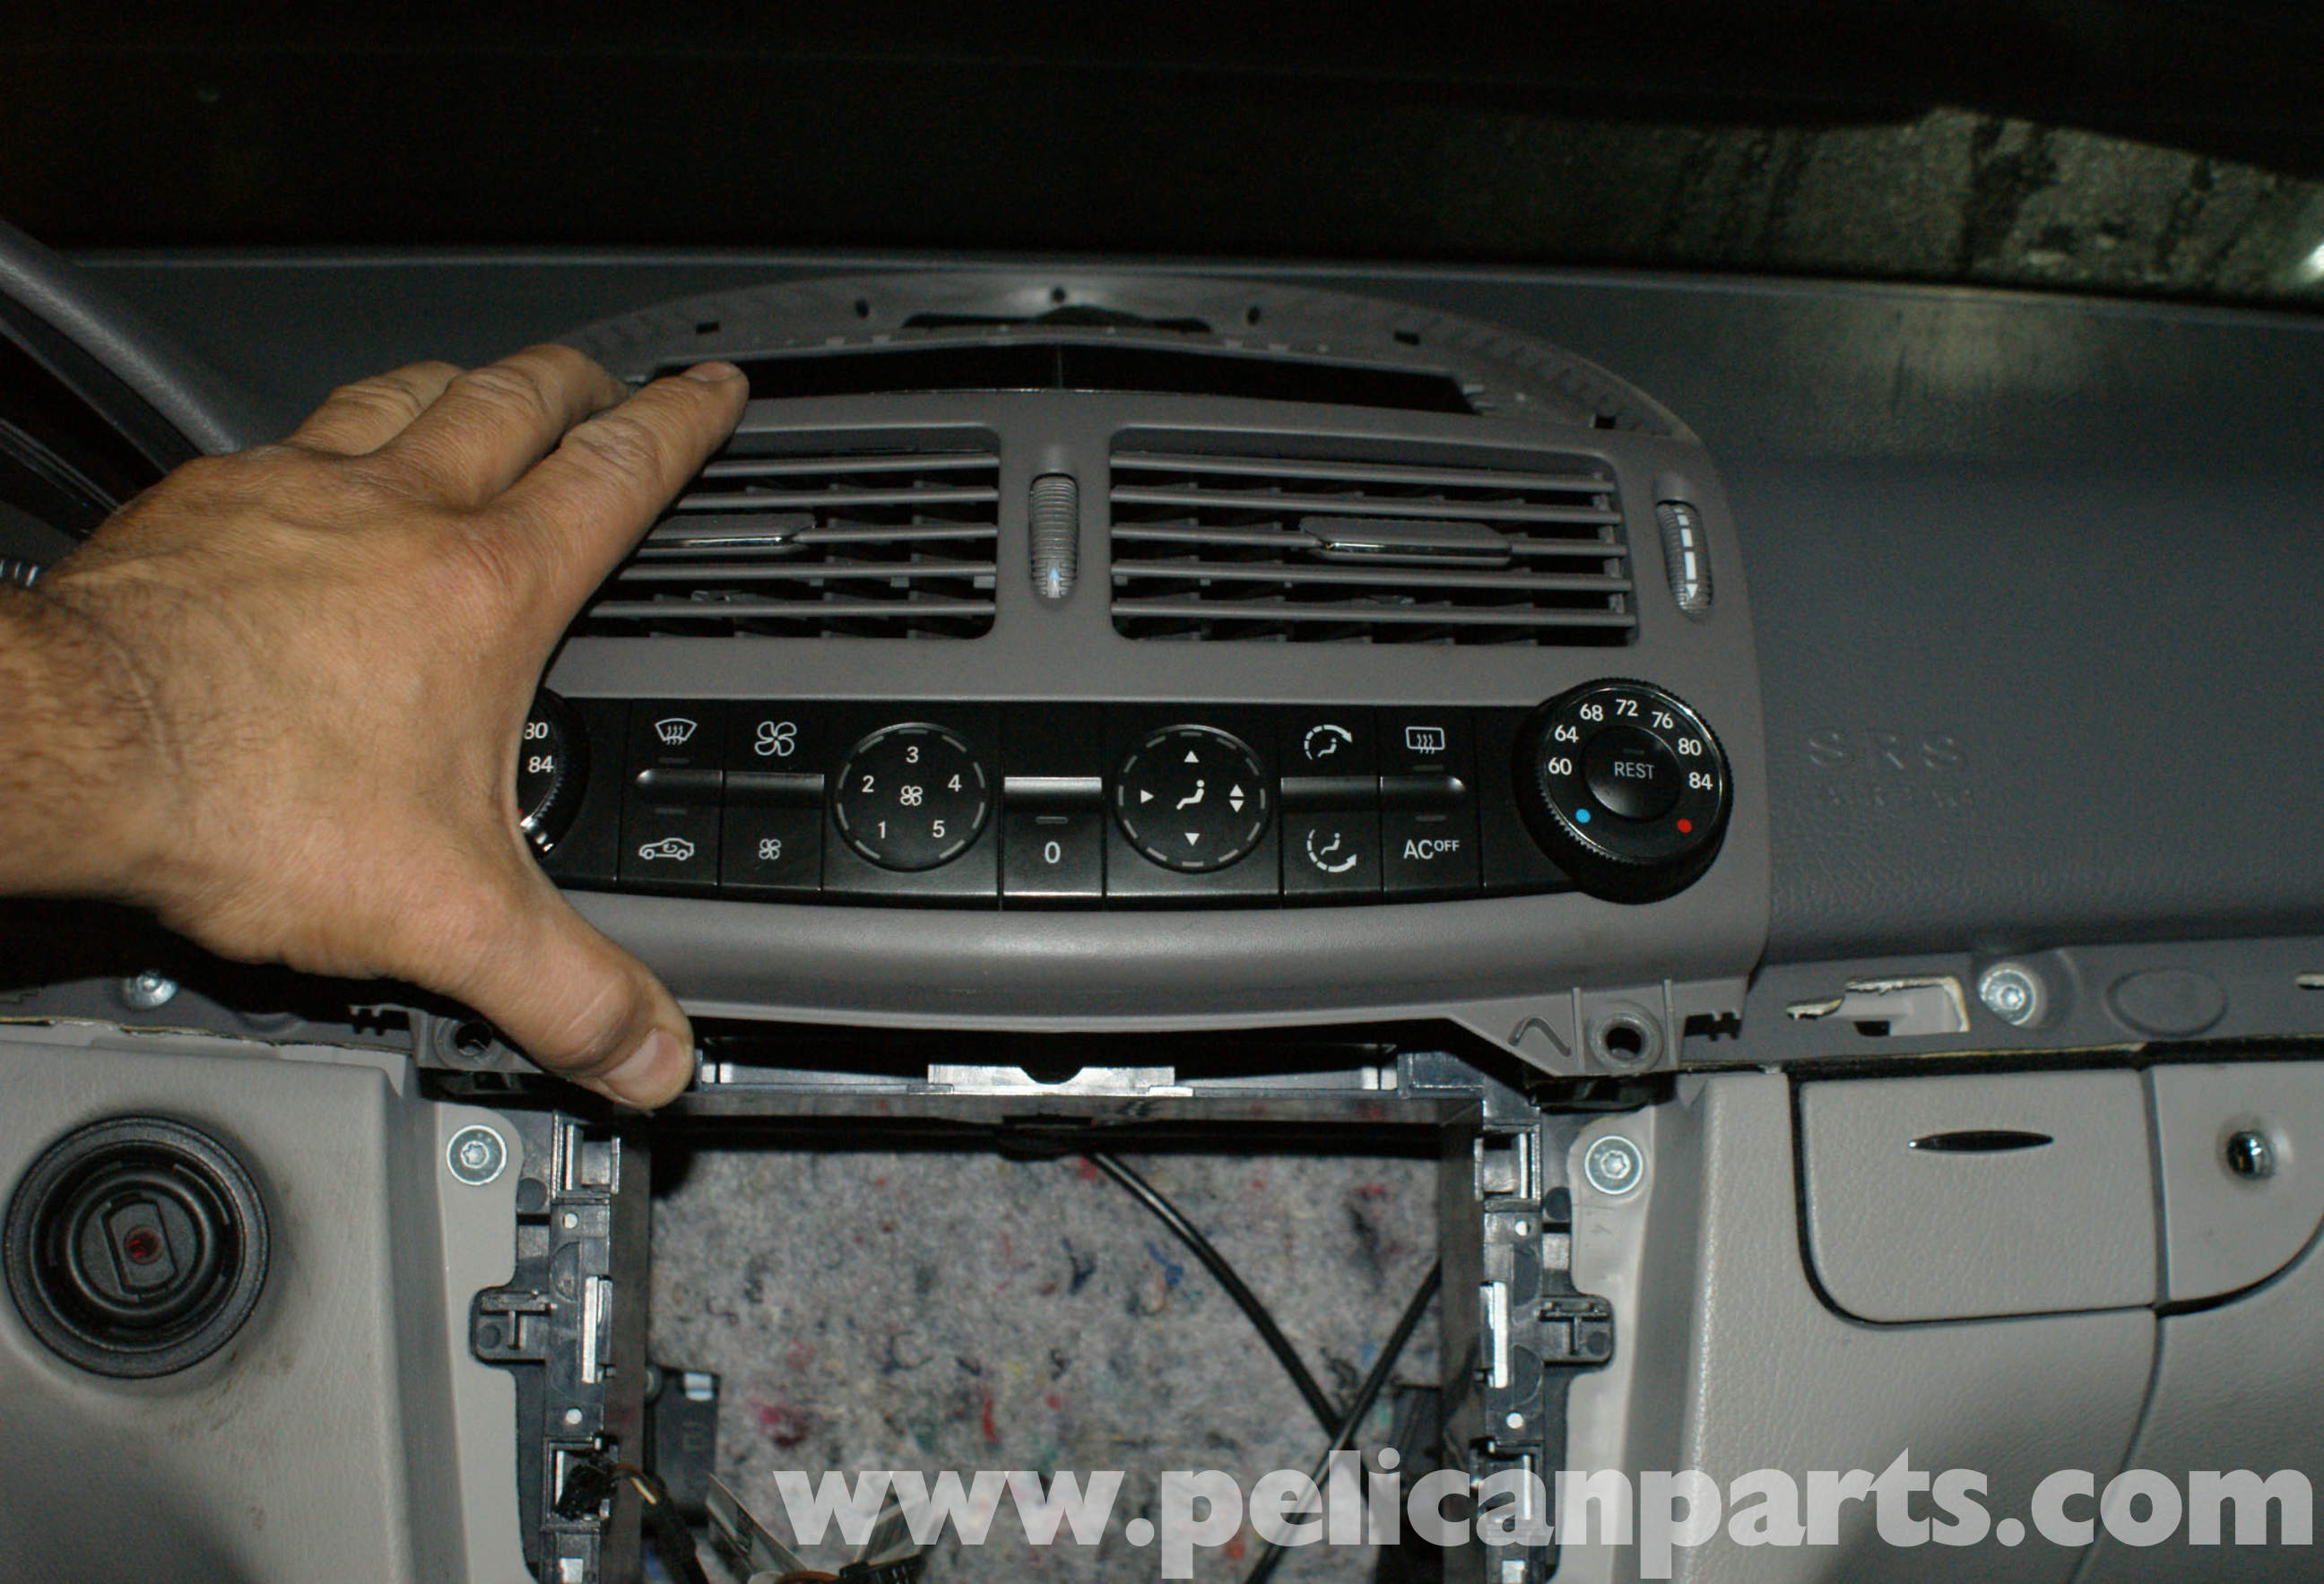 Mercedes benz w211 climate control unit replacement 2003 for 2008 mercedes benz ml350 problems